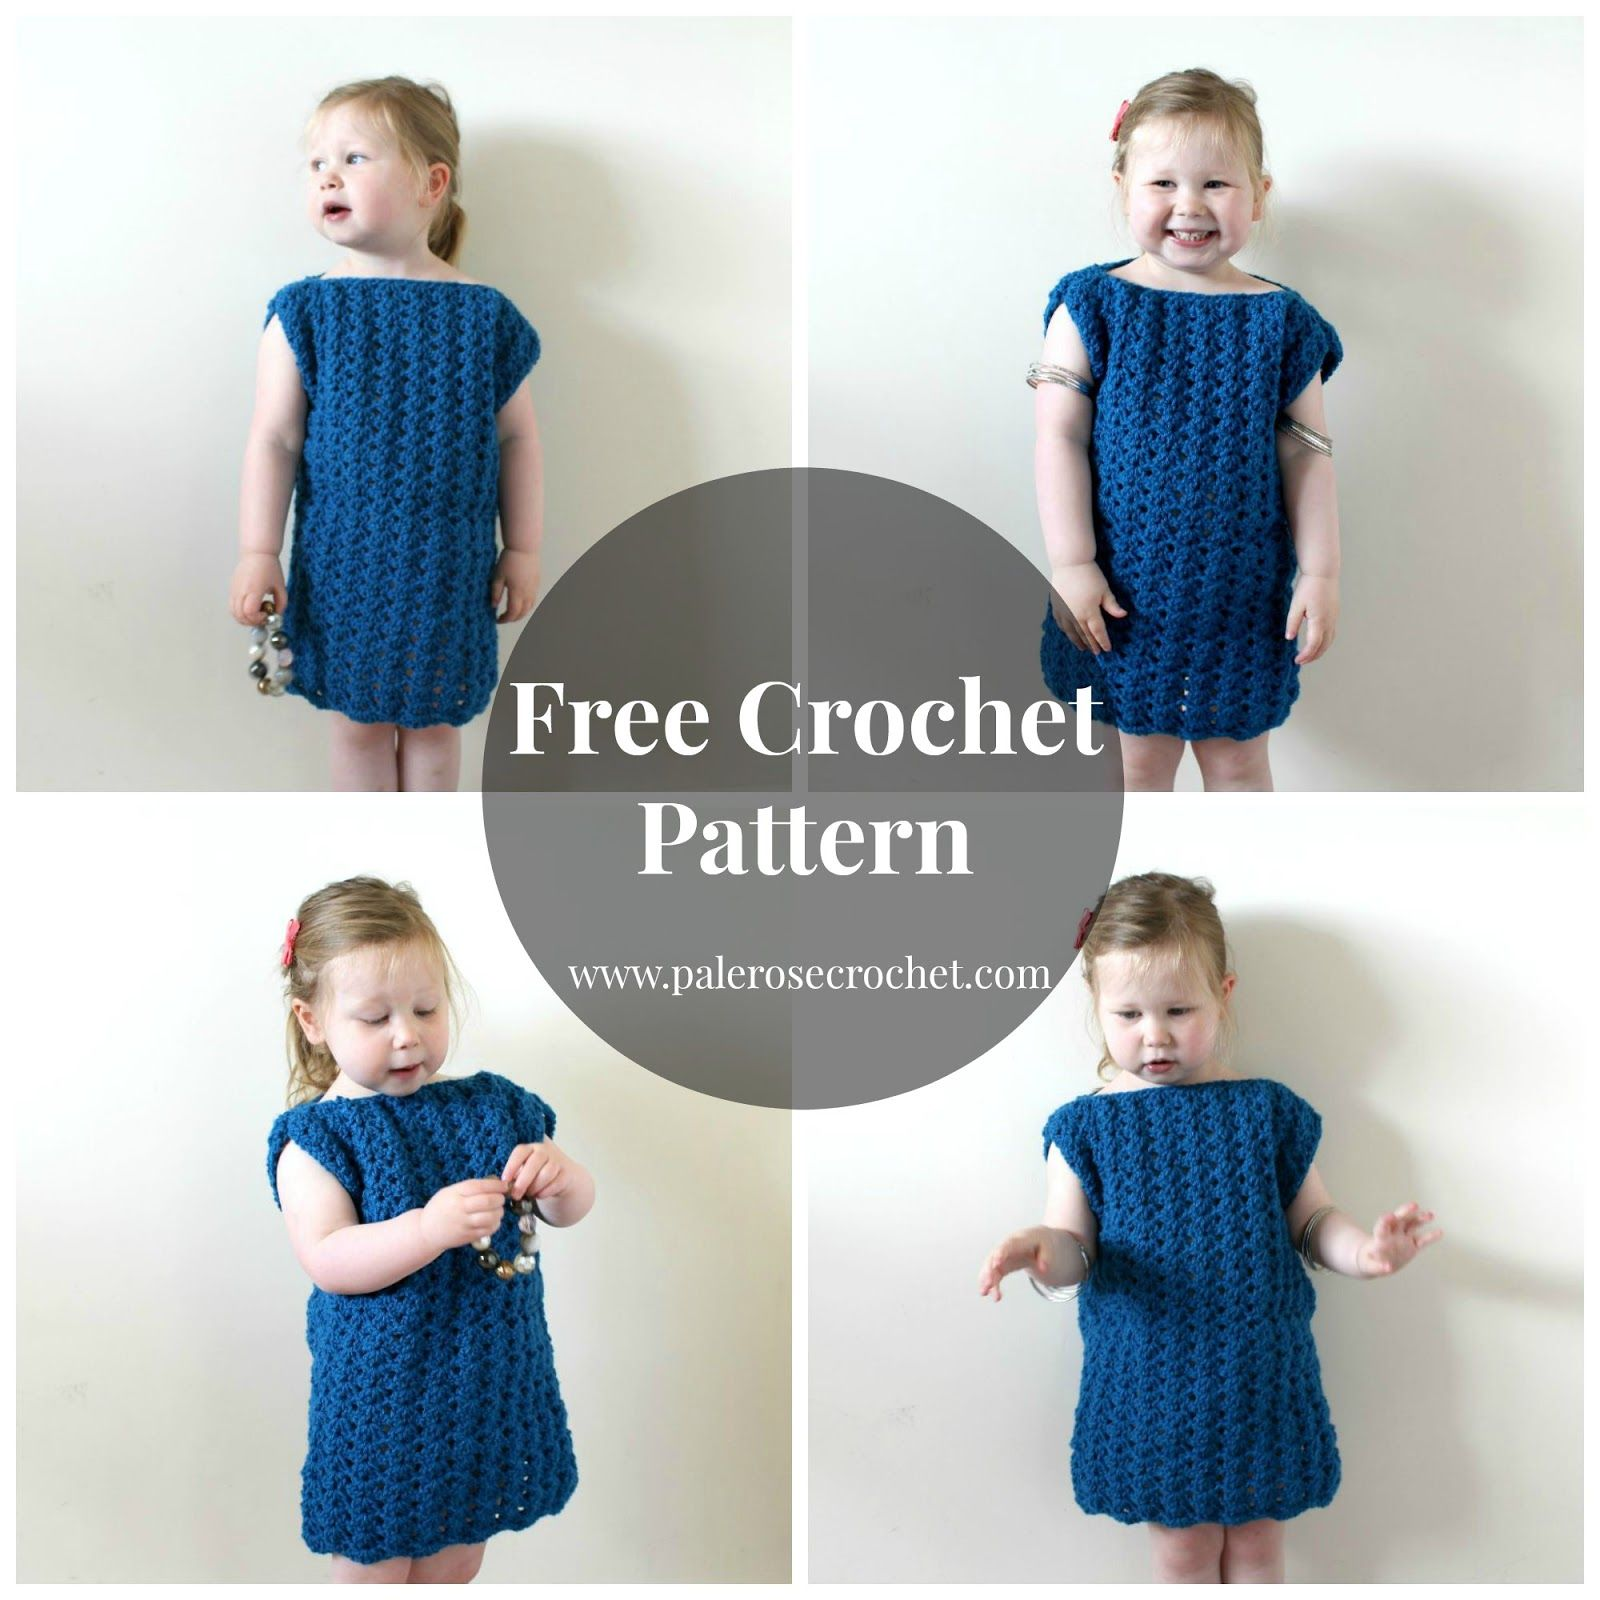 Free Crochet Pattern - Toddler Play Day Dress | Pale Rose Crochet ...